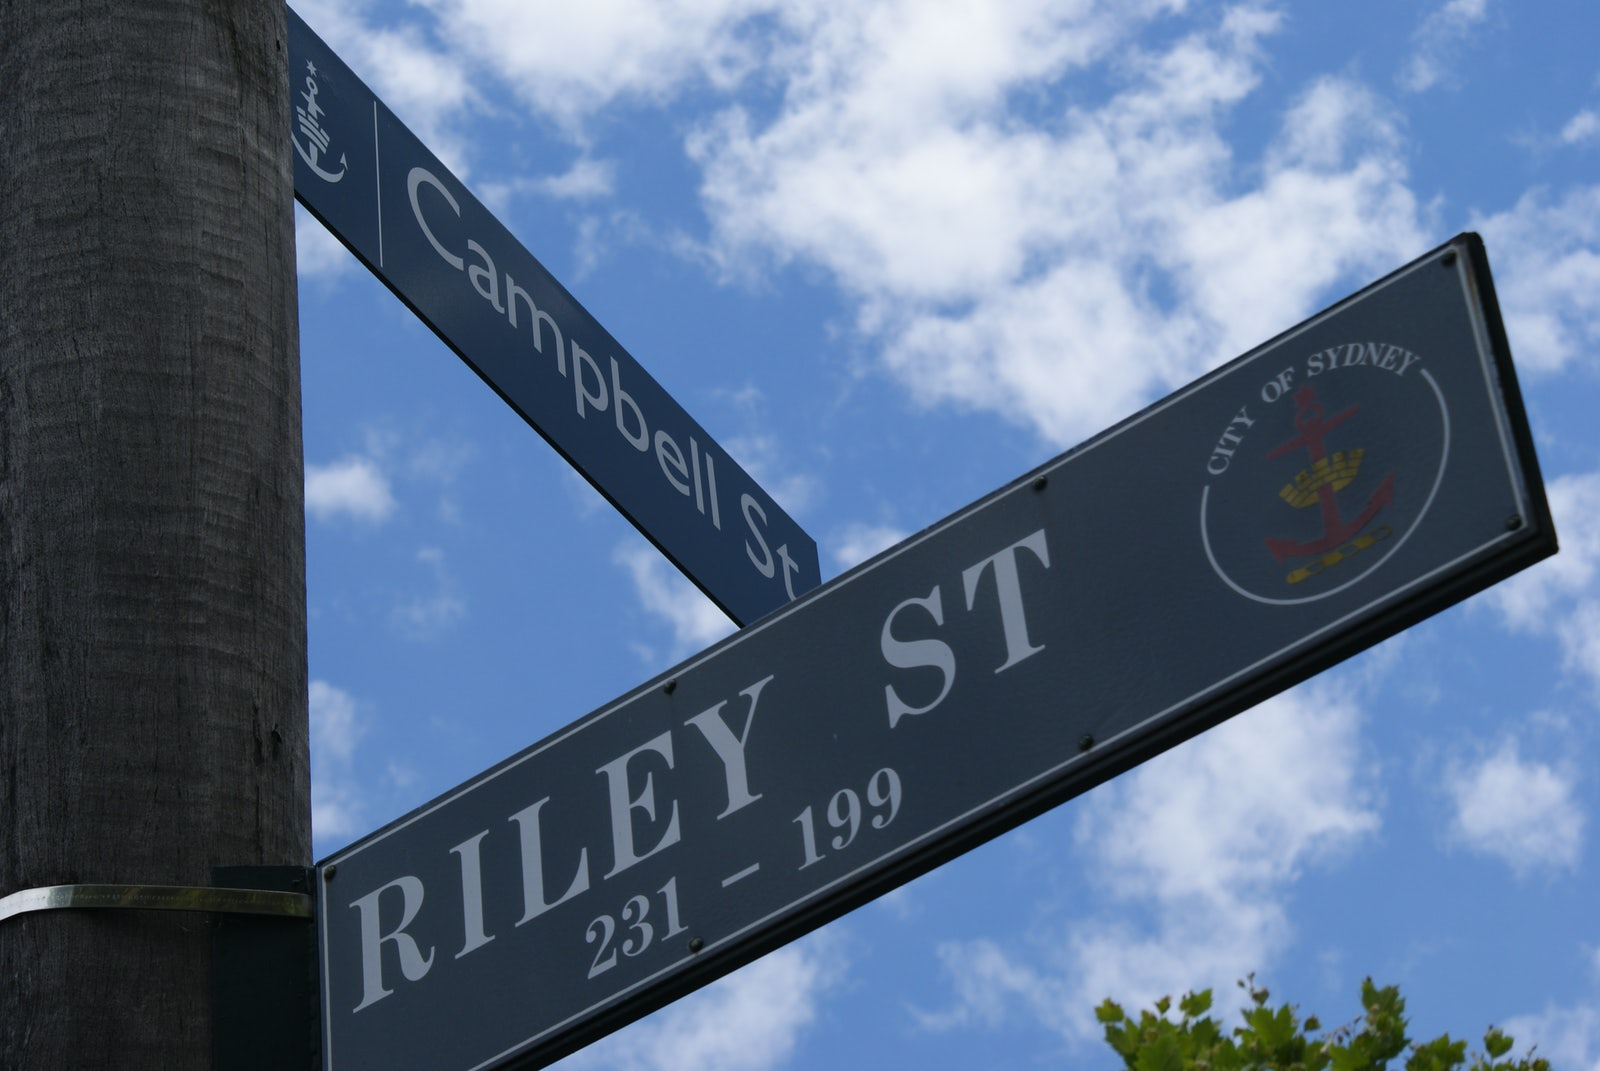 A picture of a Riley Street sign in Surry Hills